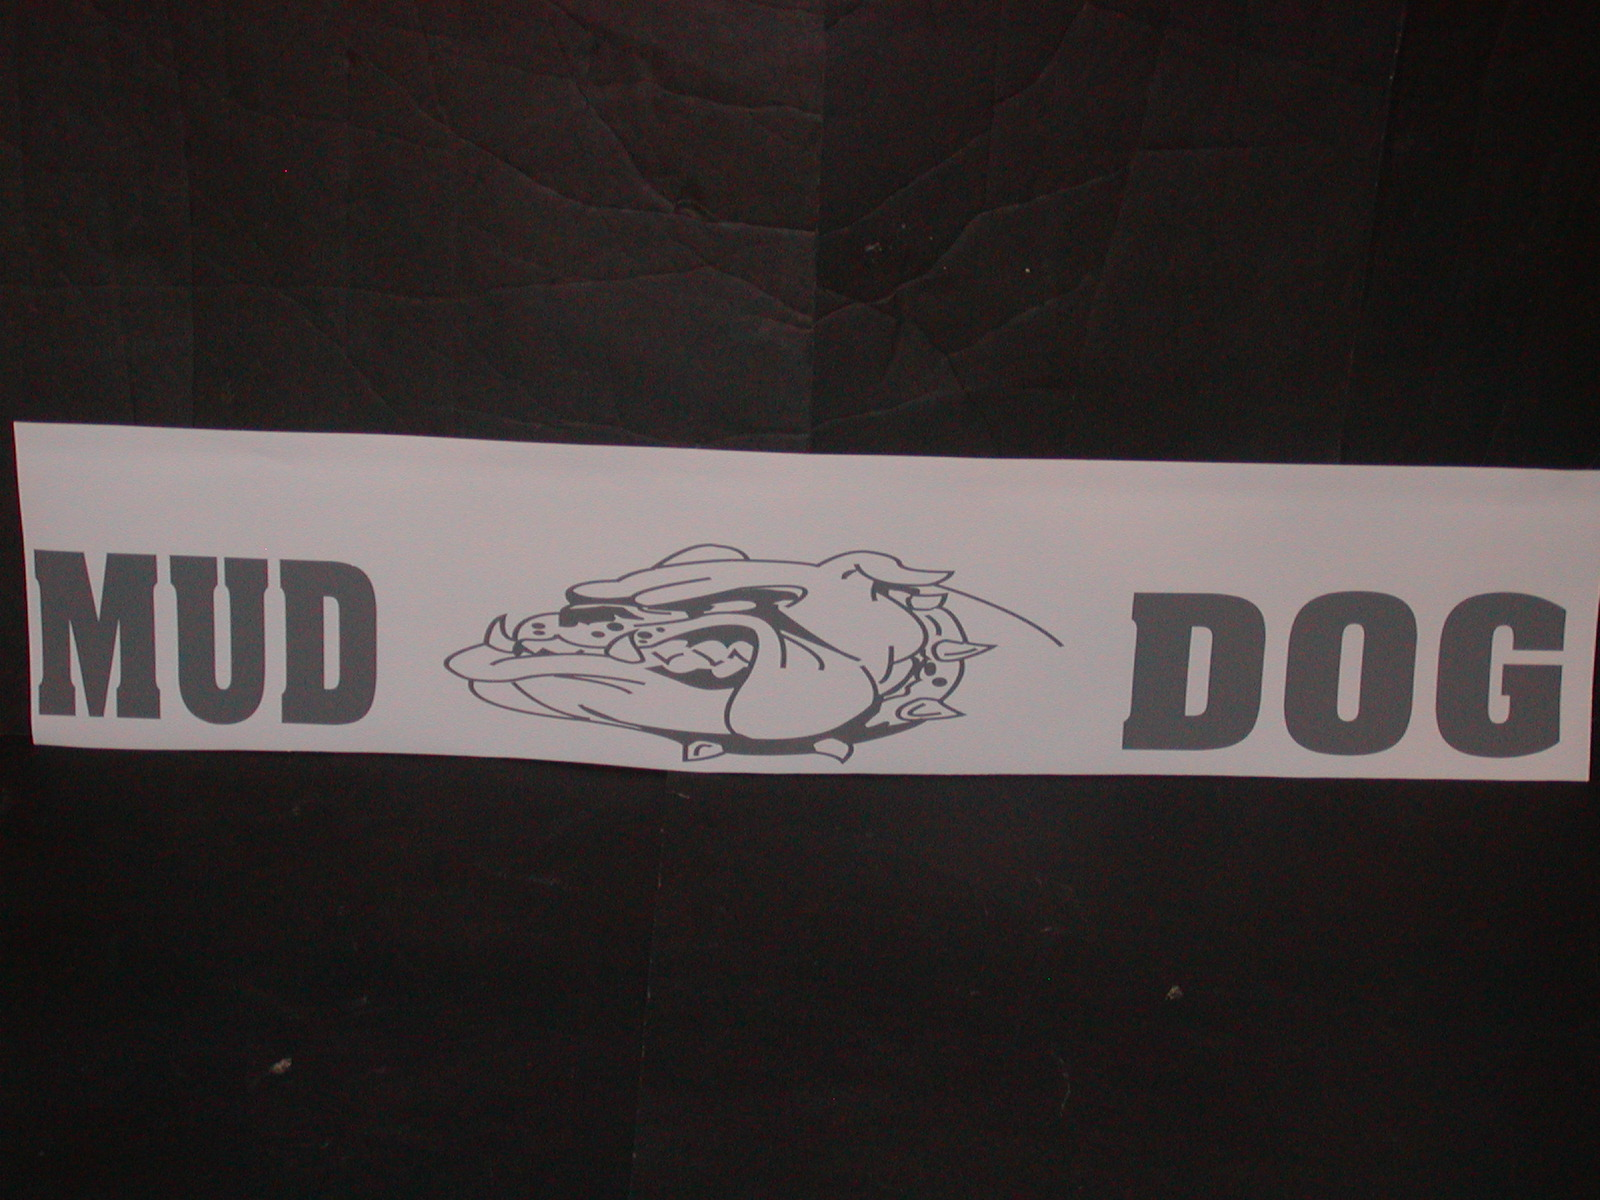 Mud Dog Windshield Or Tailgate Decal